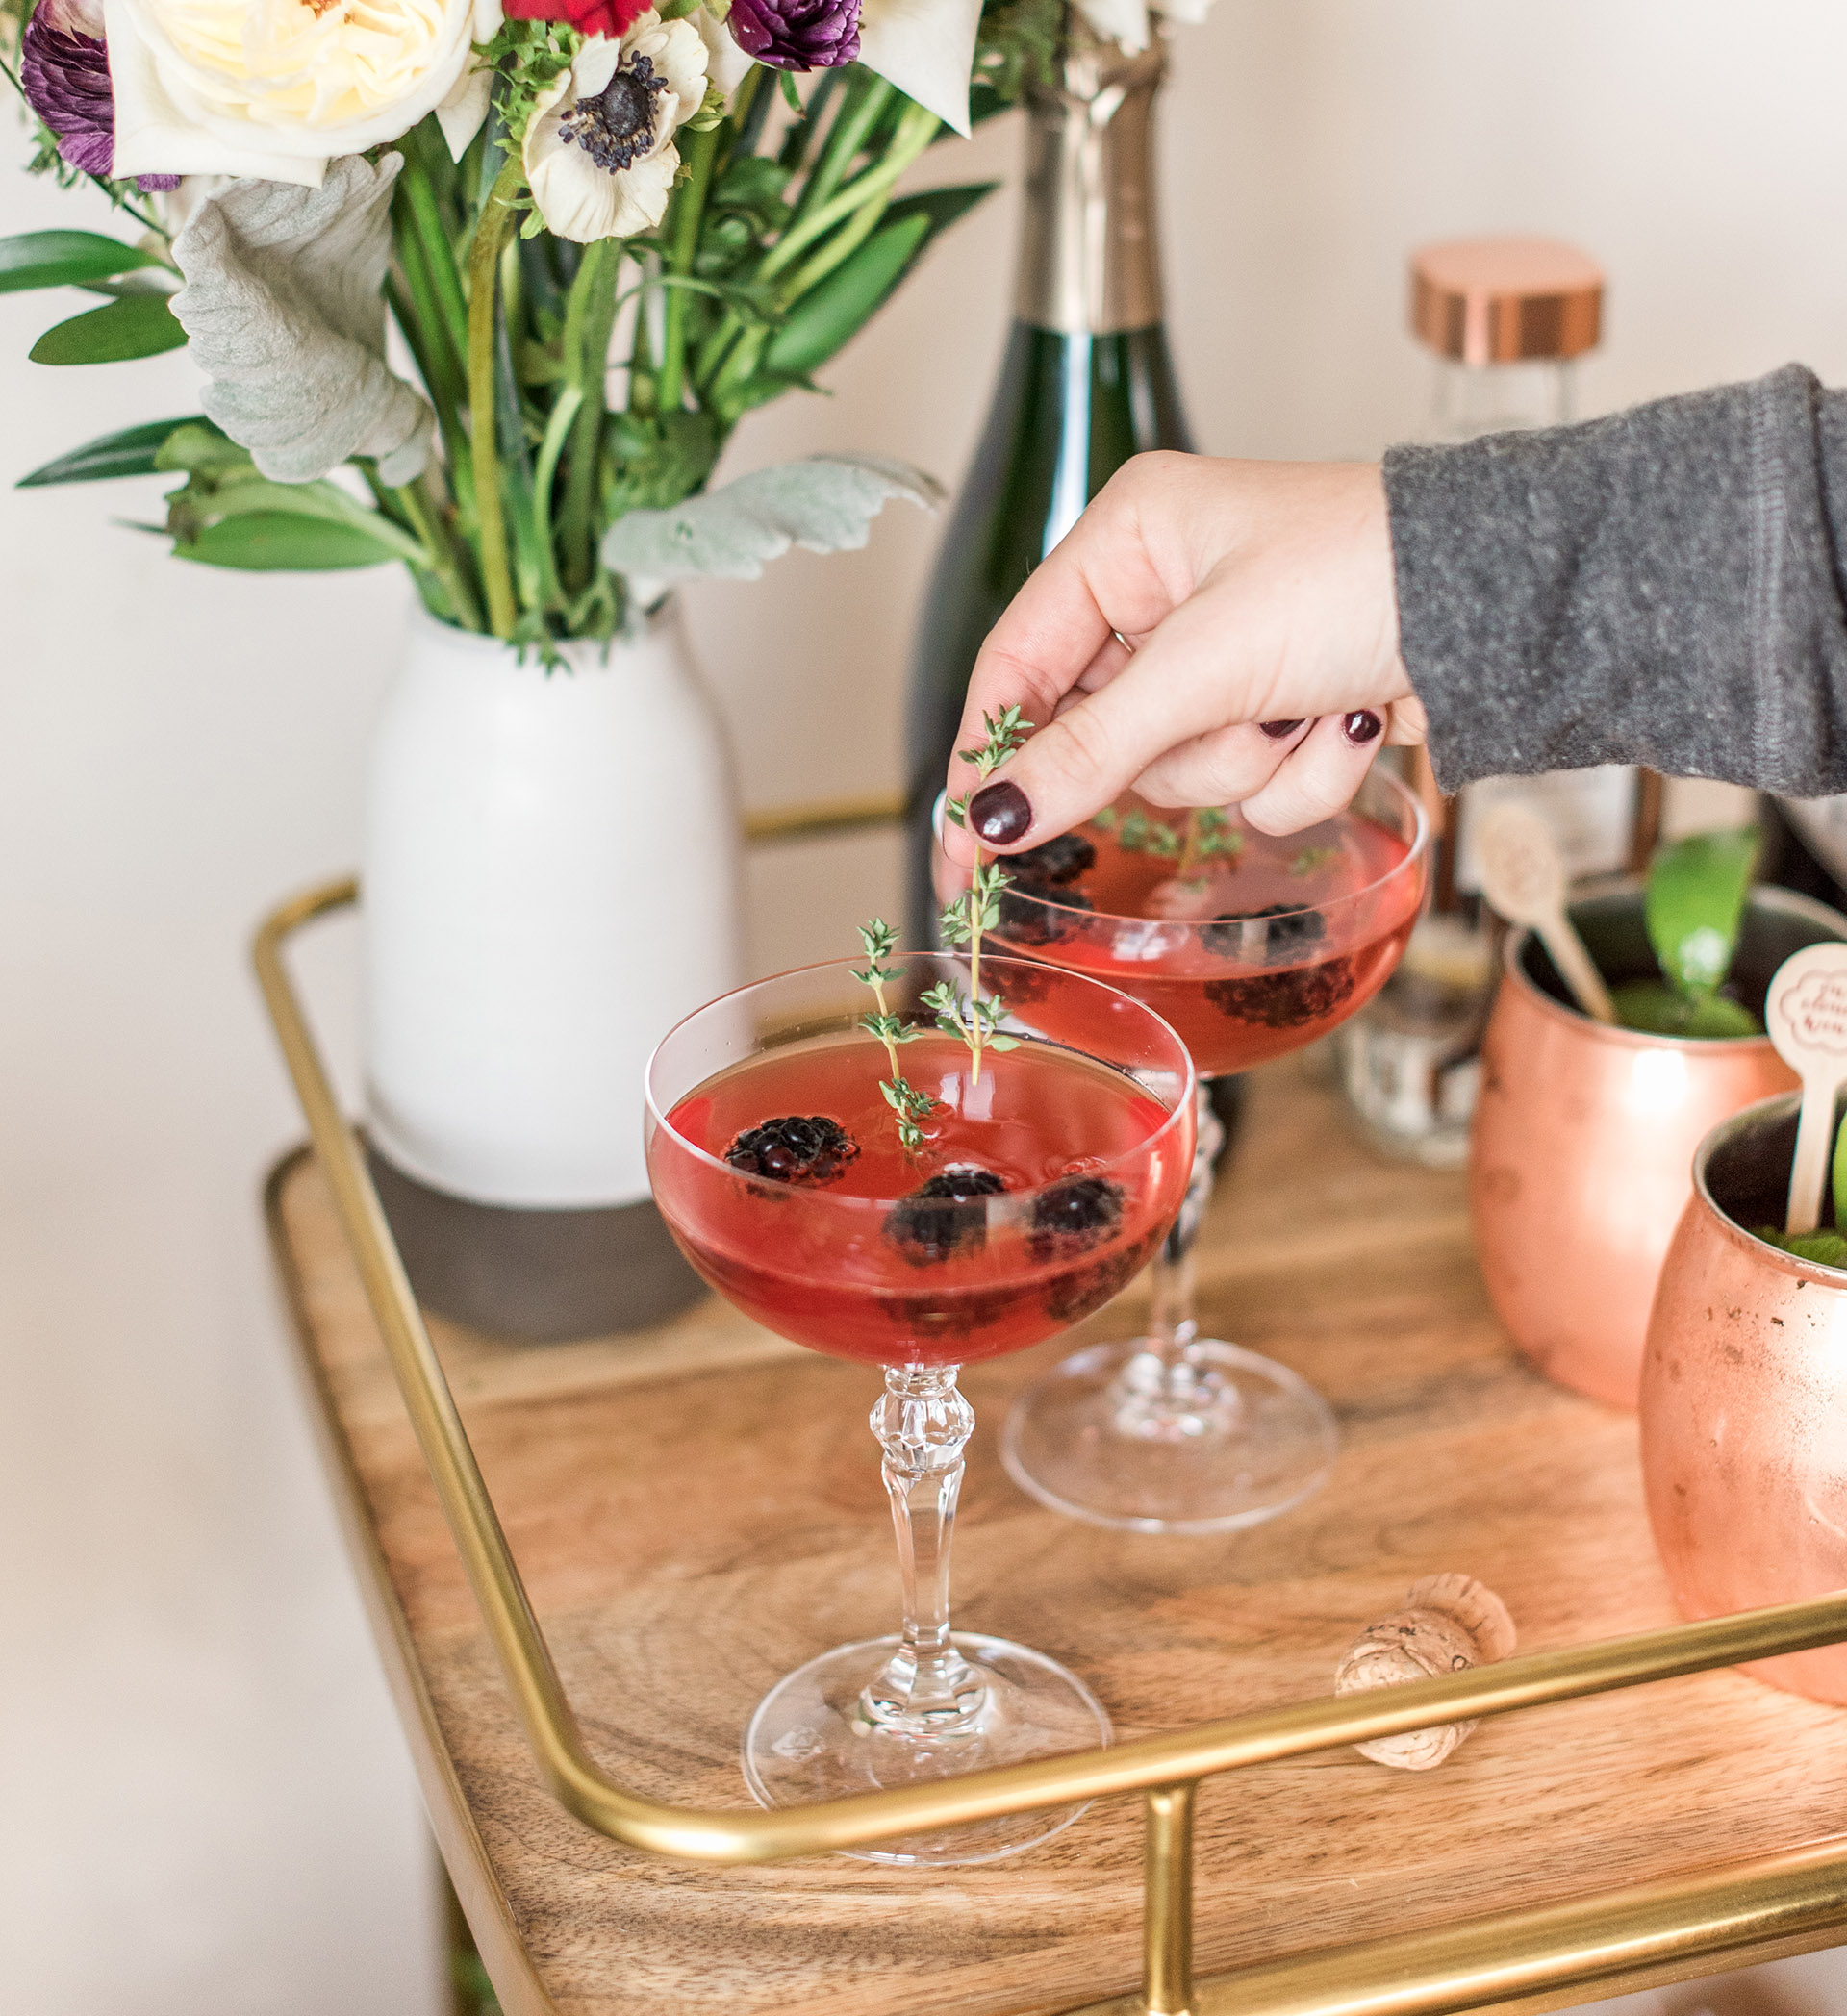 Two coupe glasses holding pink liquid and three blackberries on a bar cart